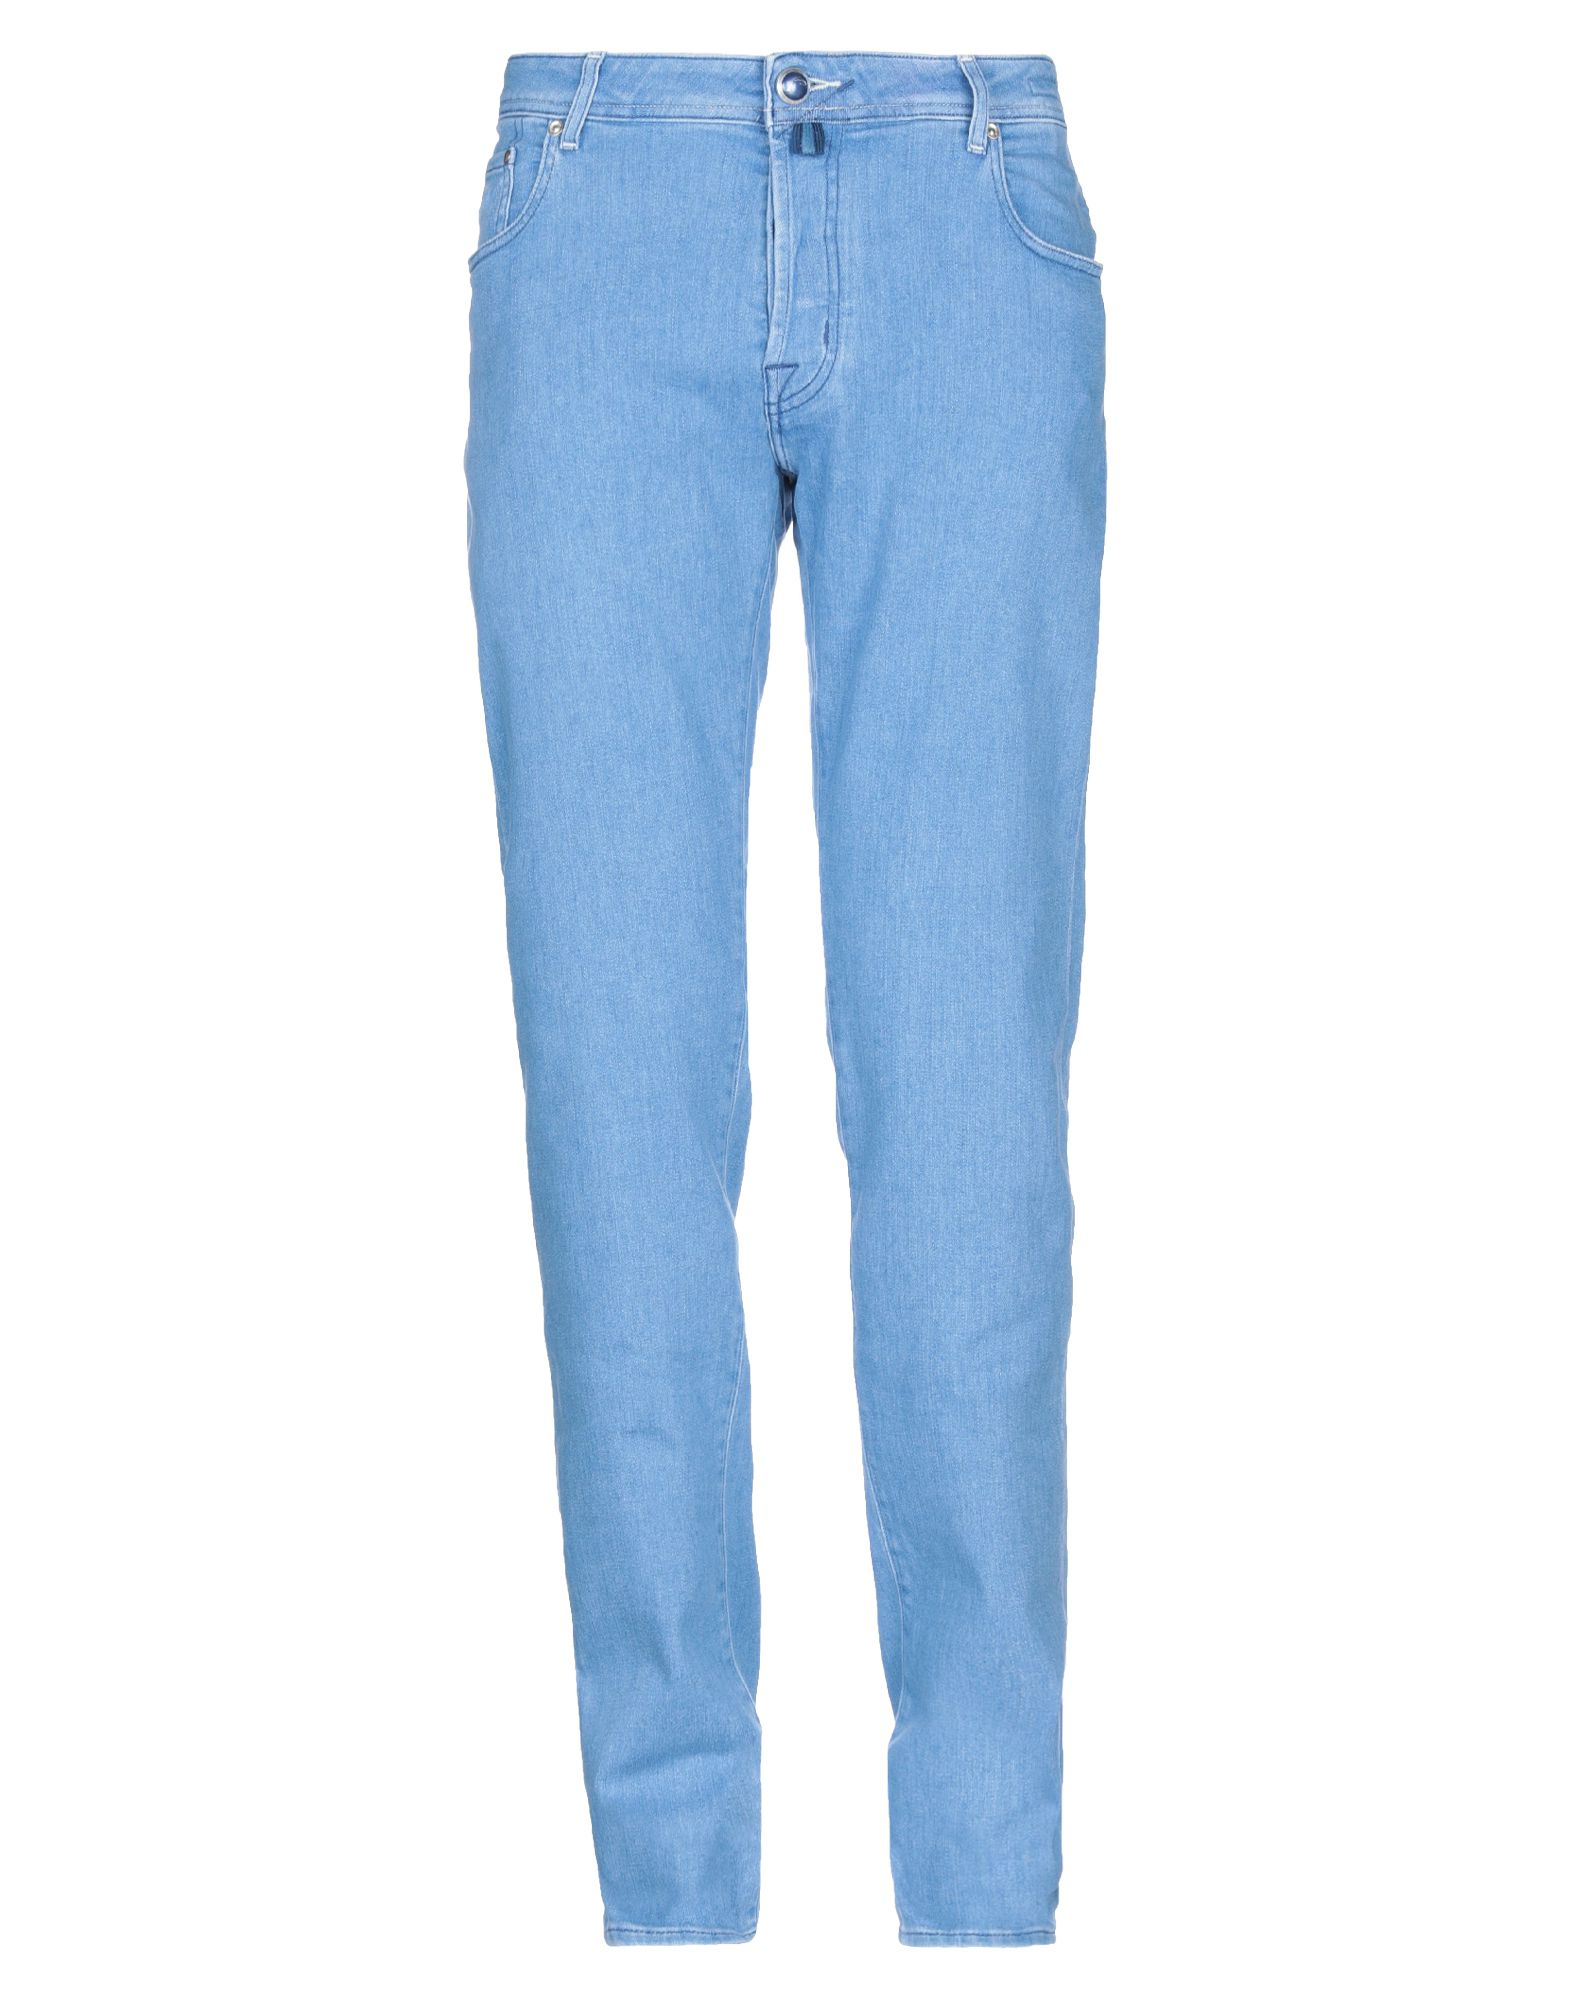 JACOB COHЁN Denim pants - Item 42791576